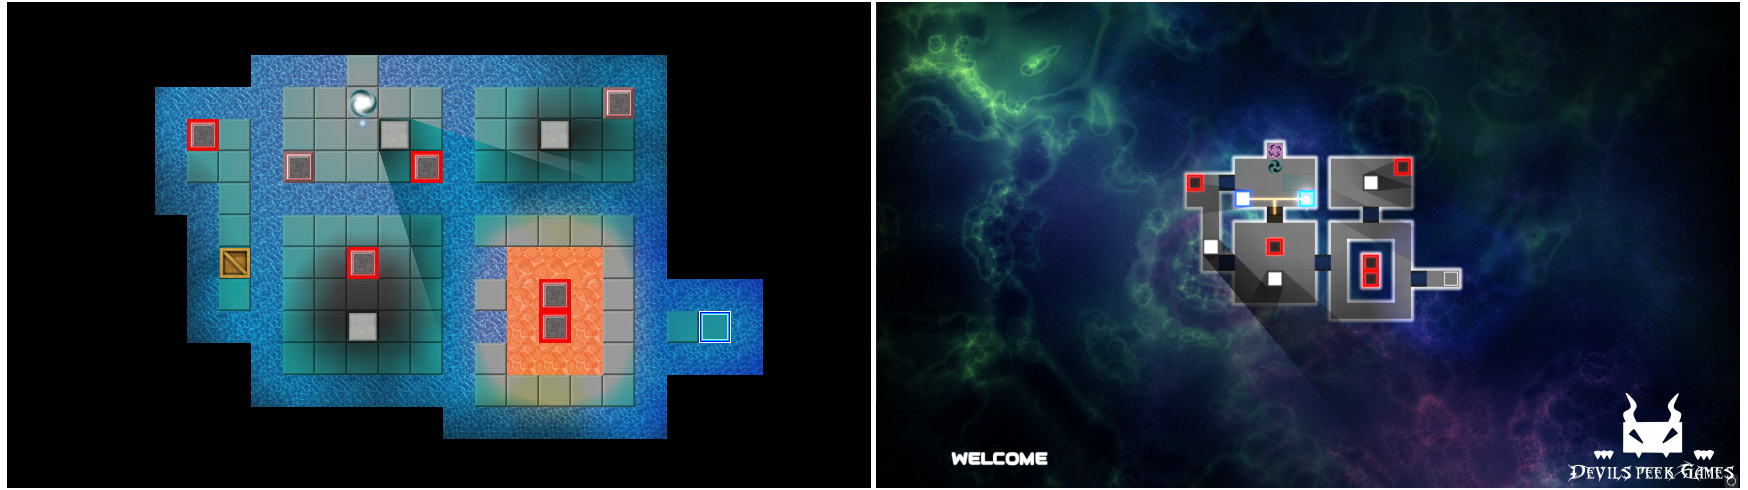 Demo Level Welcome - Before and After